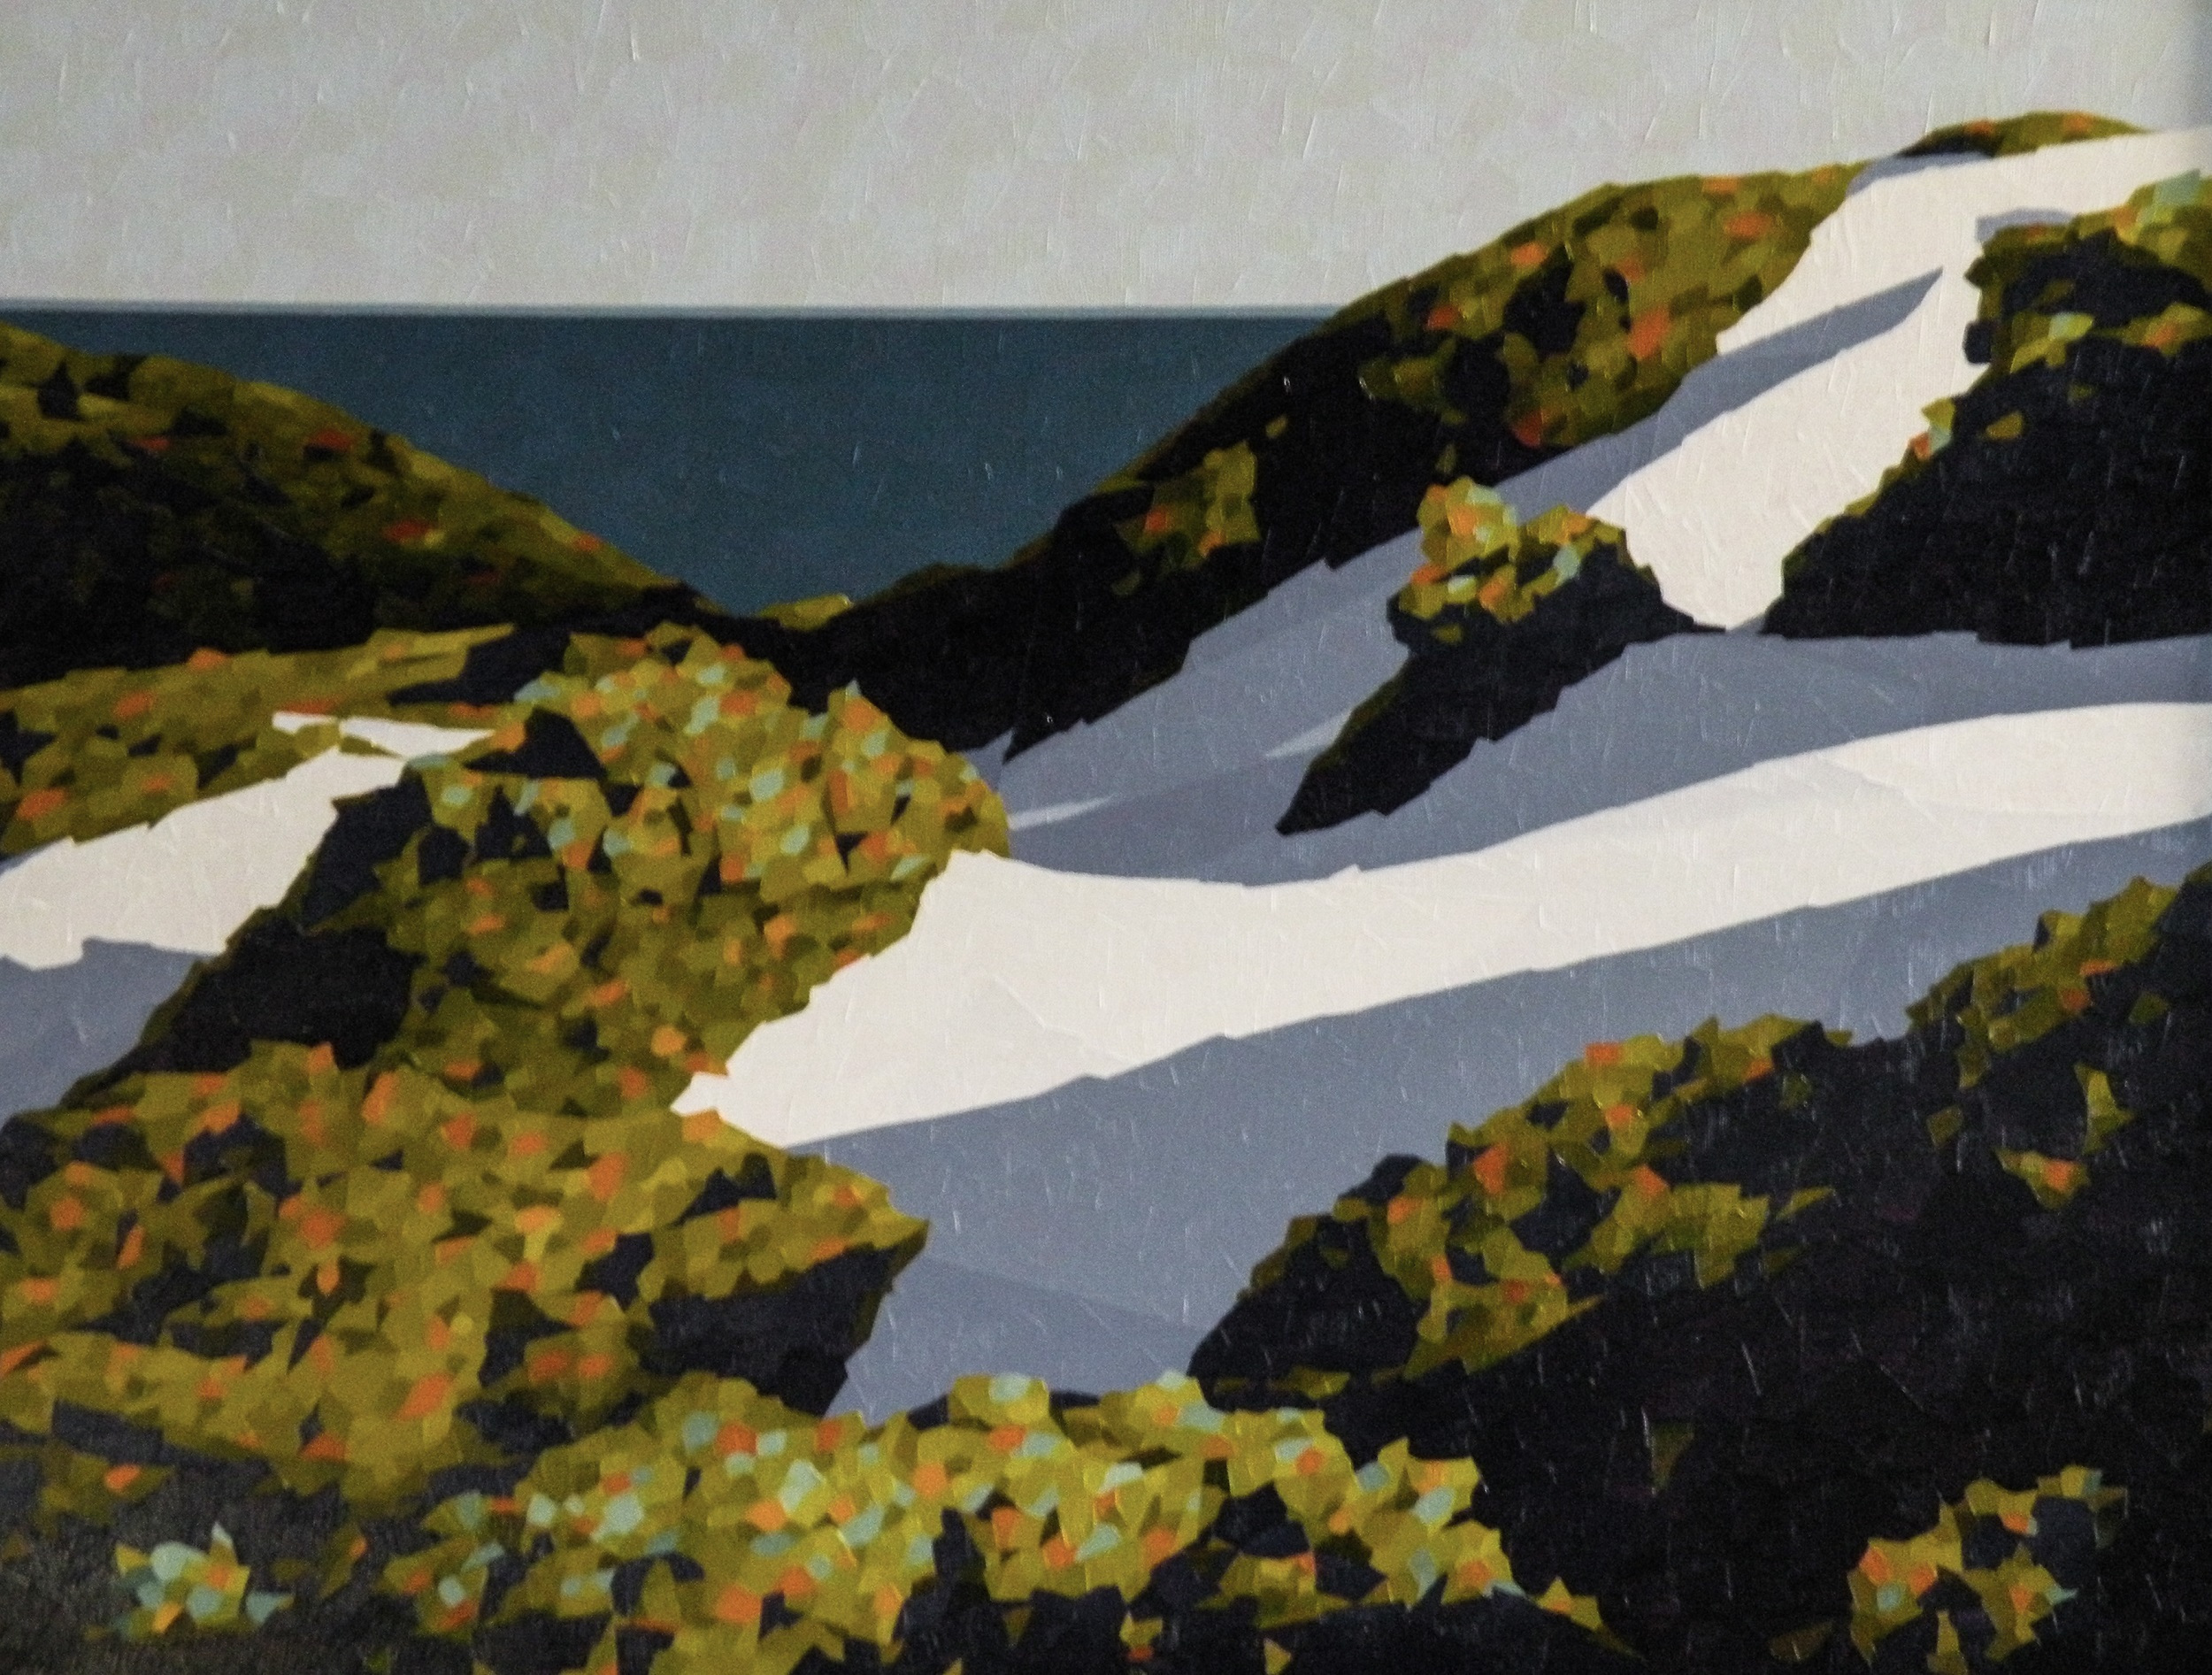 Dunes 1 artwork by Colin Madgwick - art listed for sale on Artplode